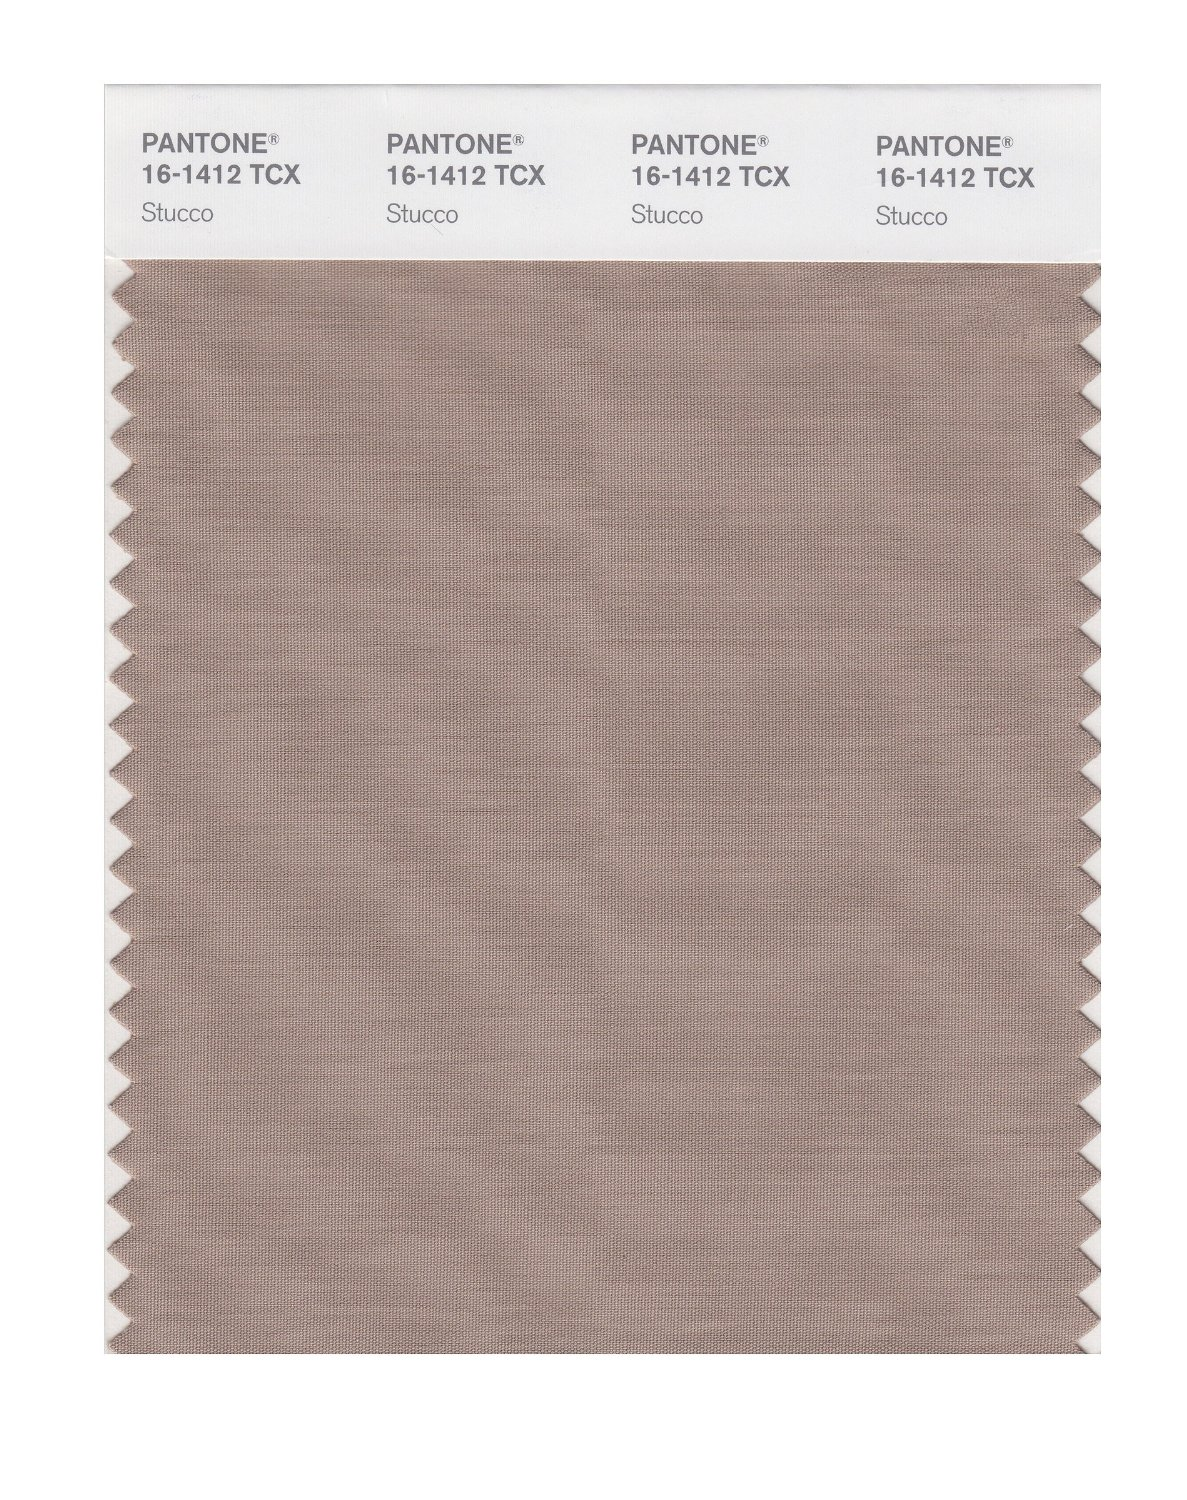 Pantone Smart Swatch 16-1412 Stucco